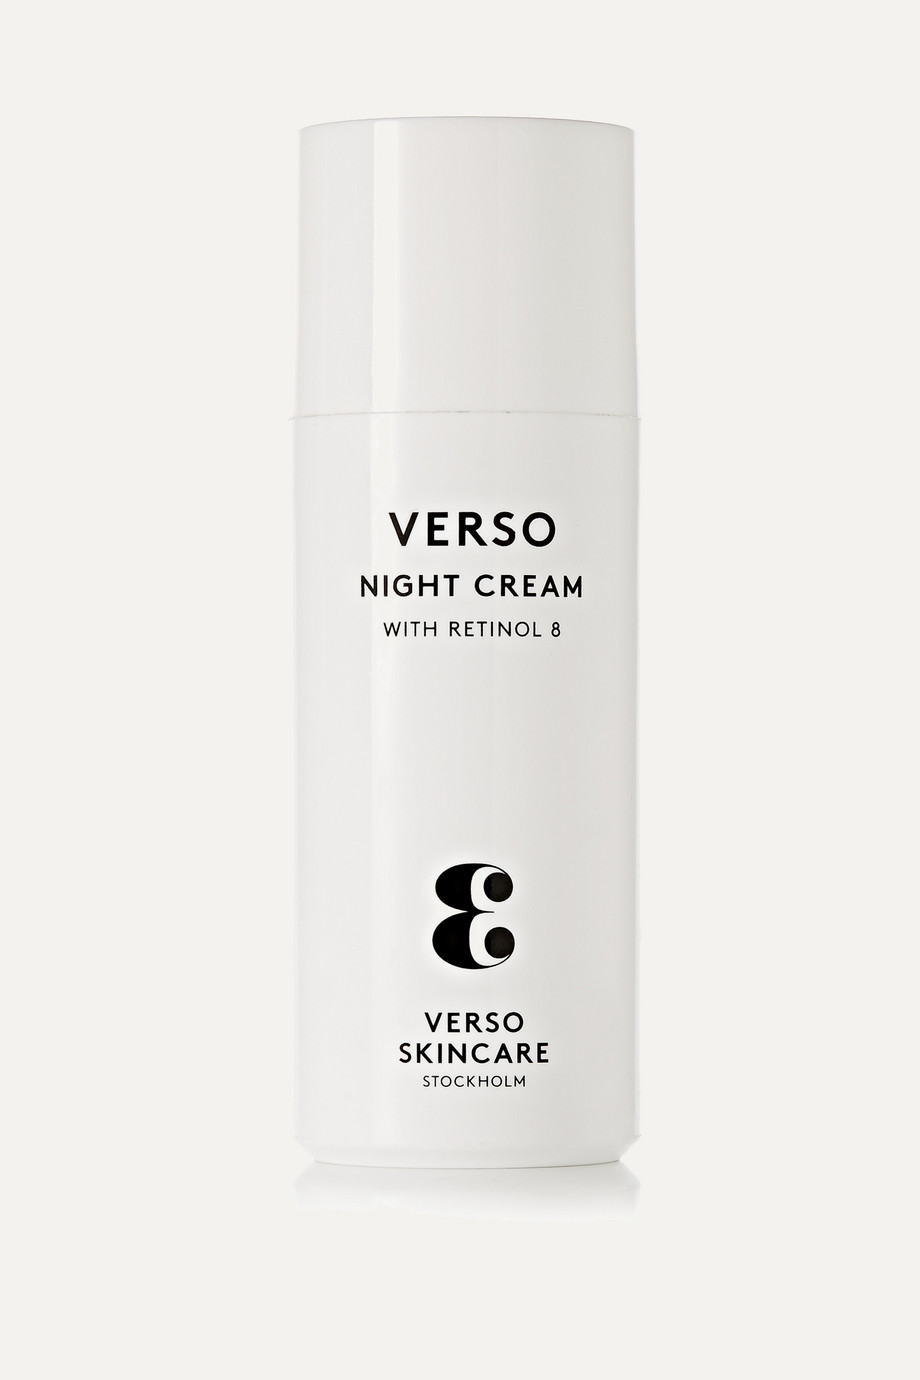 VERSO Night Cream 3, 50ml